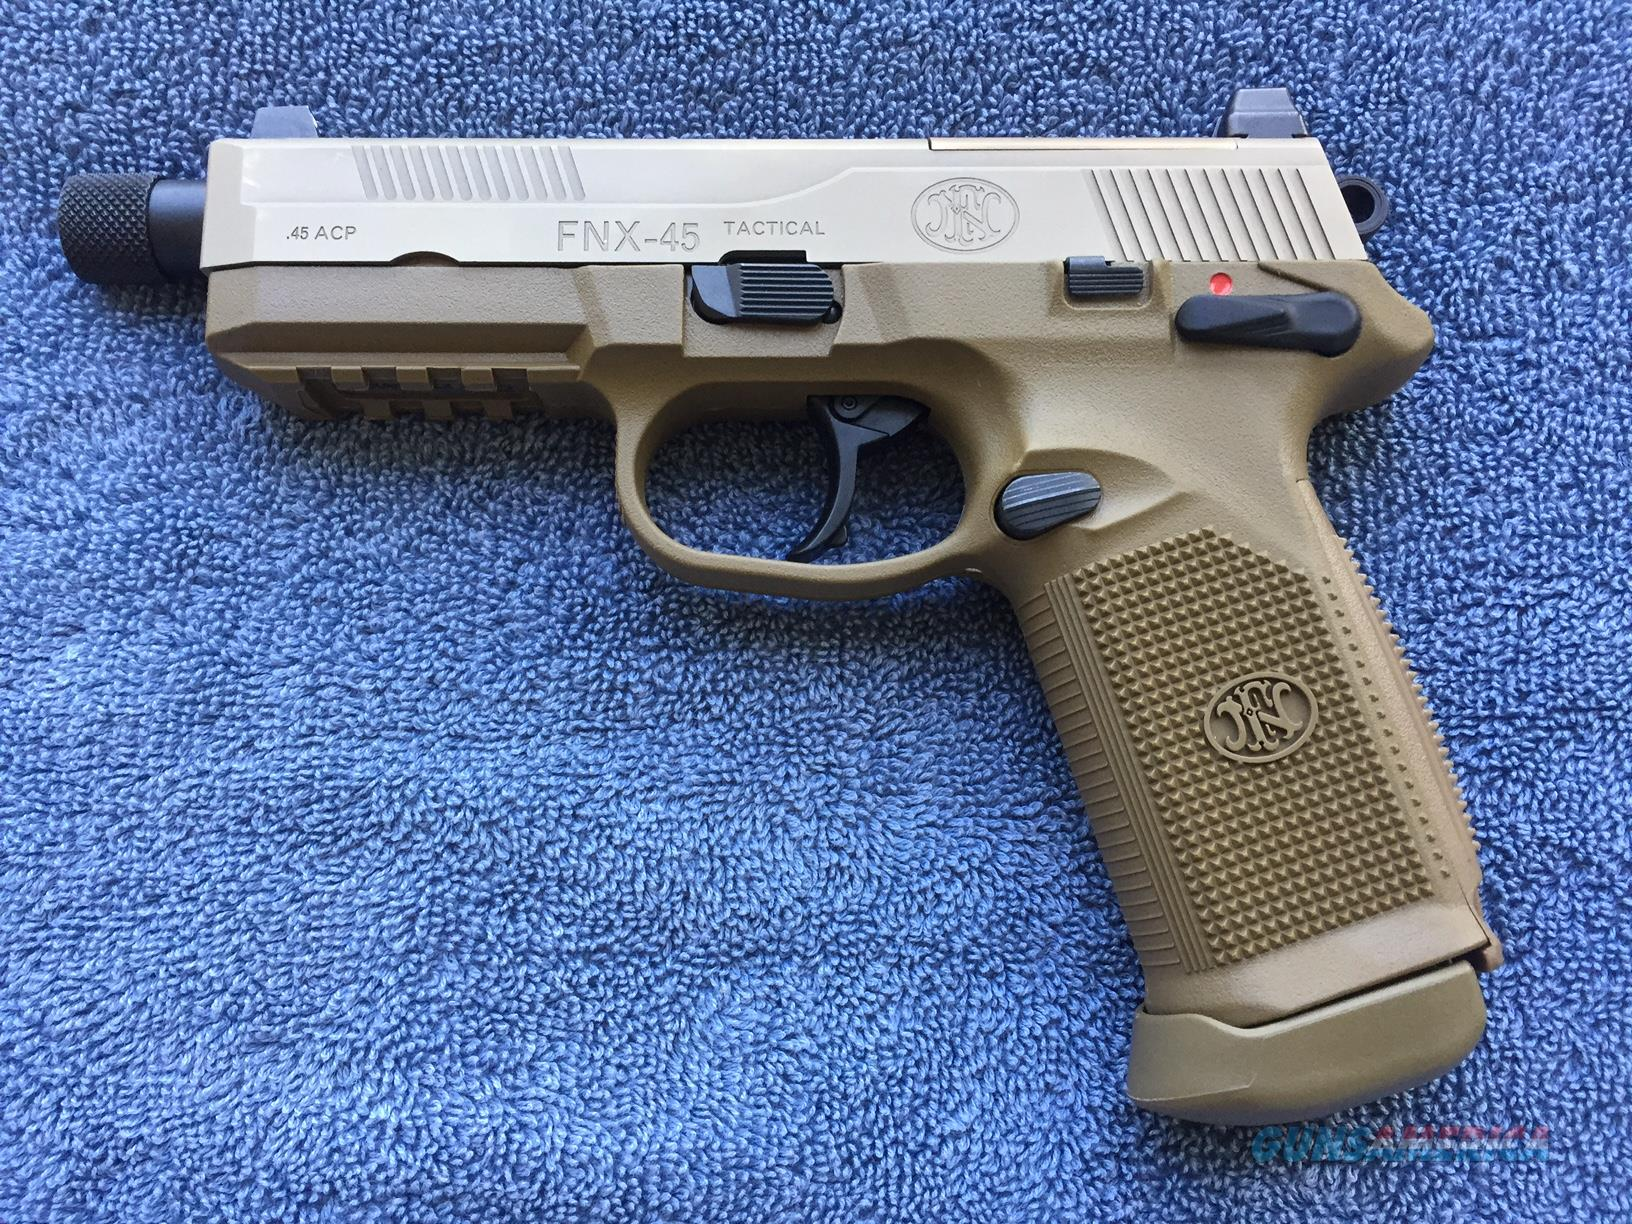 FN FNX-45 Tactical Flat Dark Earth, Used - Like New  Guns > Pistols > FNH - Fabrique Nationale (FN) Pistols > FNX